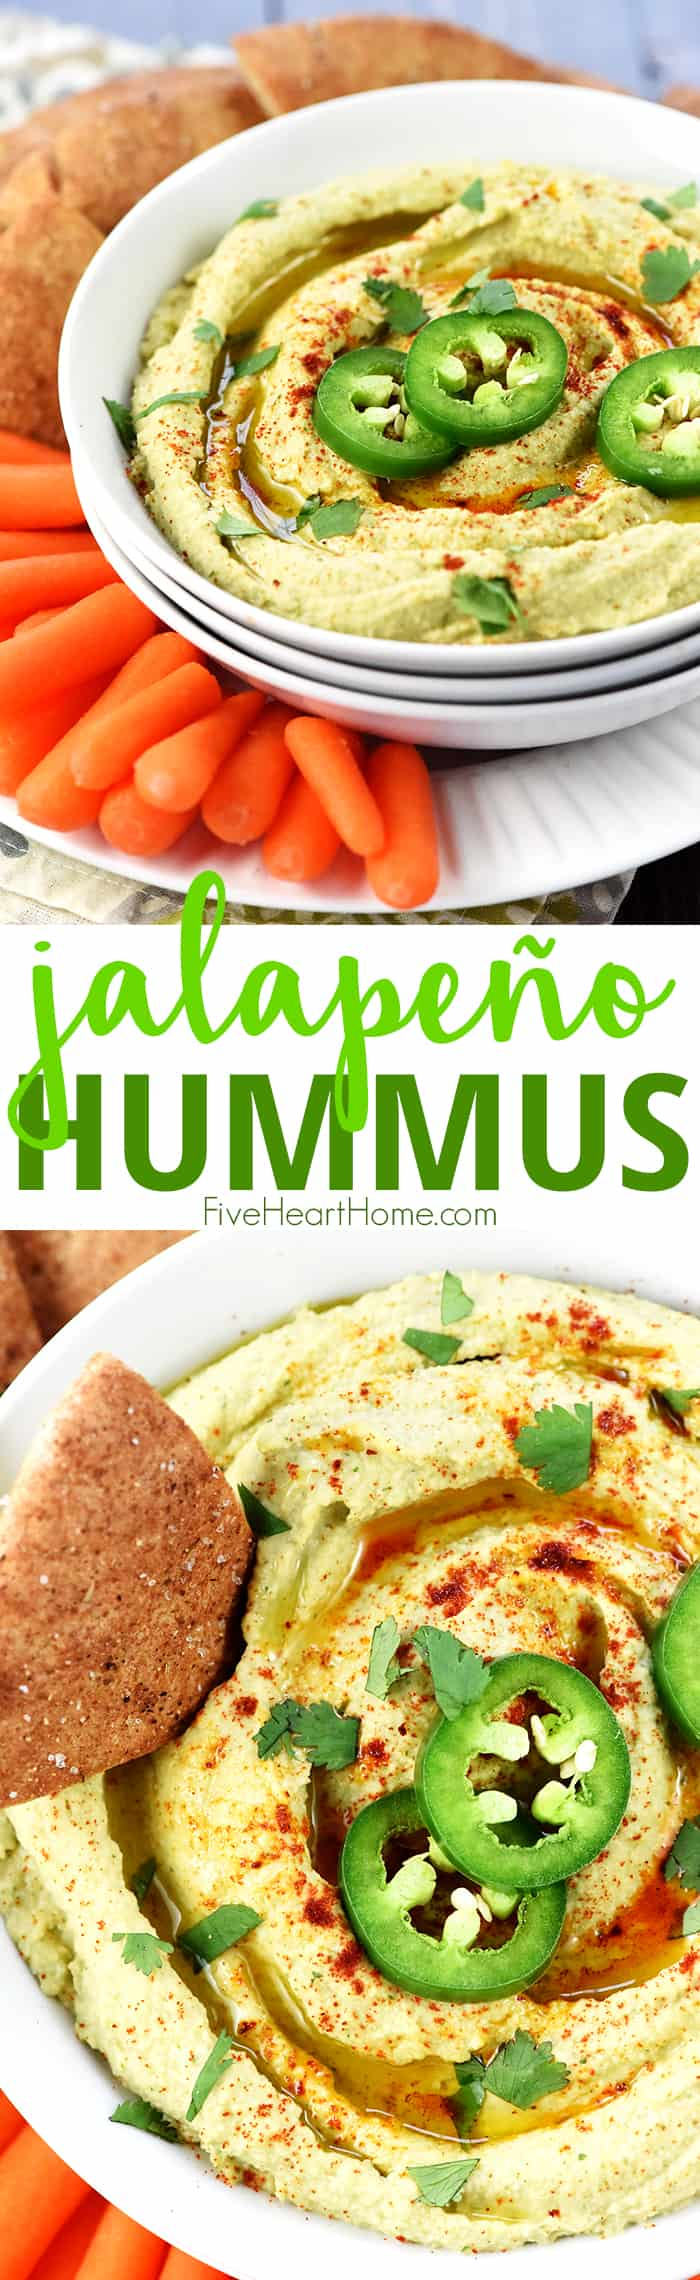 Jalapeño Hummus ~ classic hummus gets a zippy kick in this healthy, flavorful, quick and easy dip for pita wedges or your favorite raw veggies! | FiveHeartHome.com via @fivehearthome